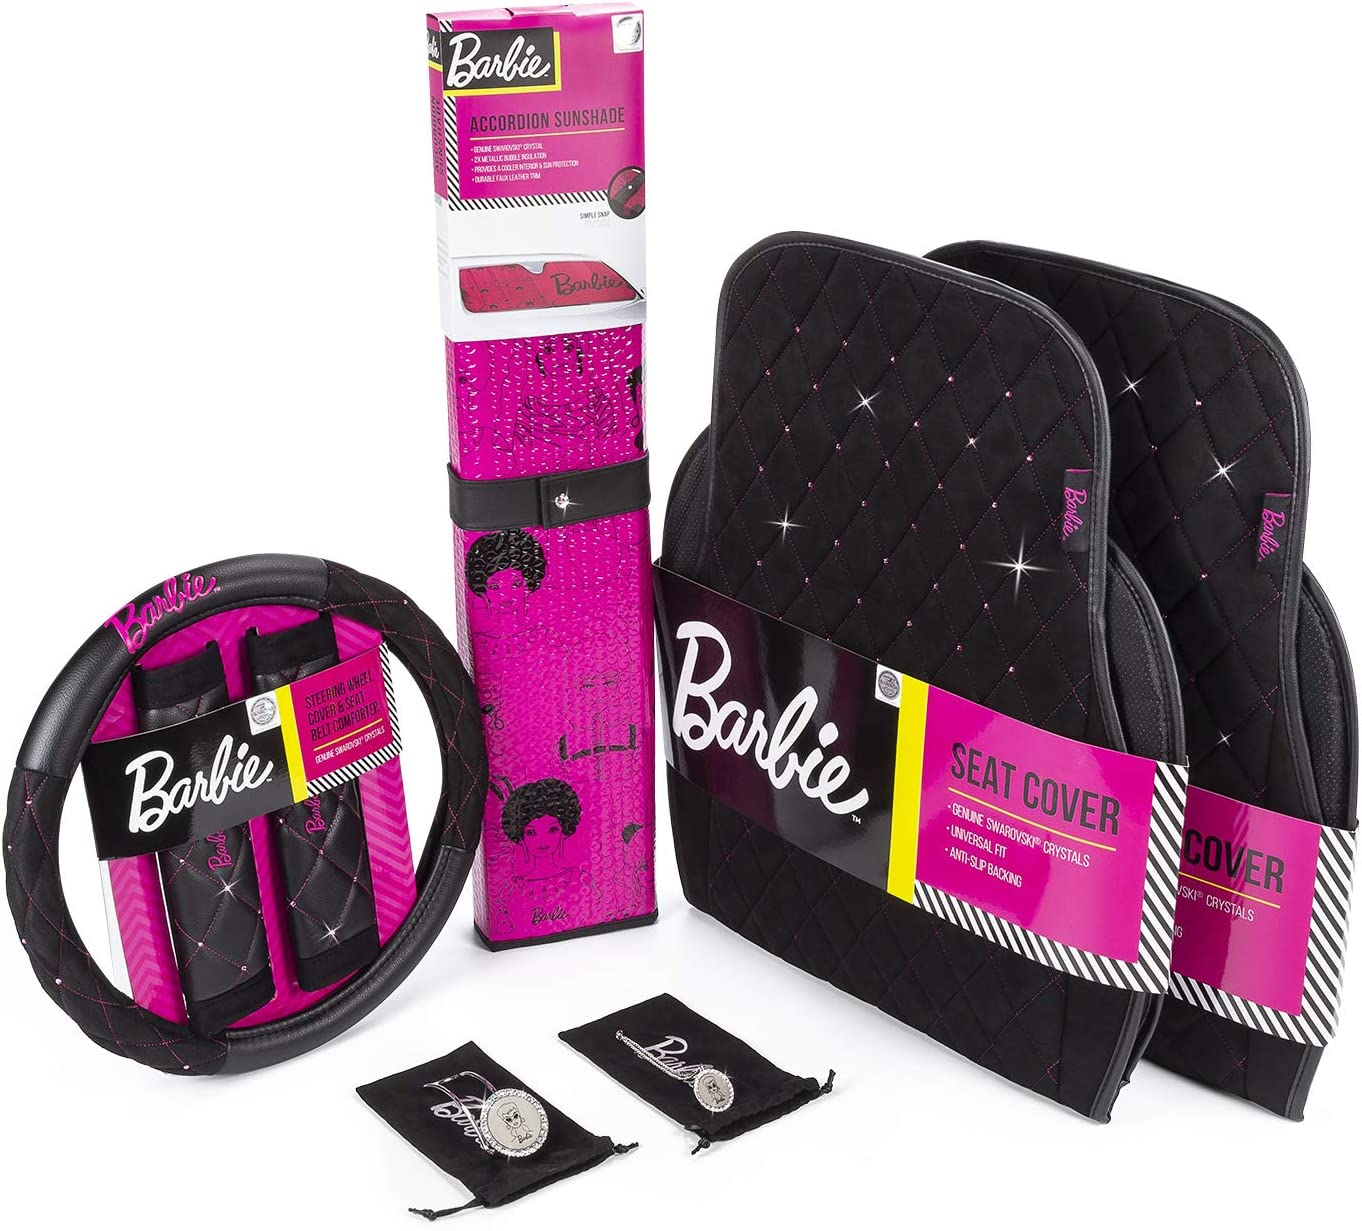 LUNNA AMA-013 Barbie 60th Anniversary Officially Licensed Collectors Female Style Seat, Steering Wheel Cover, Sunshade, Car Jewelry Kit Embellished with Swarovski Crystals